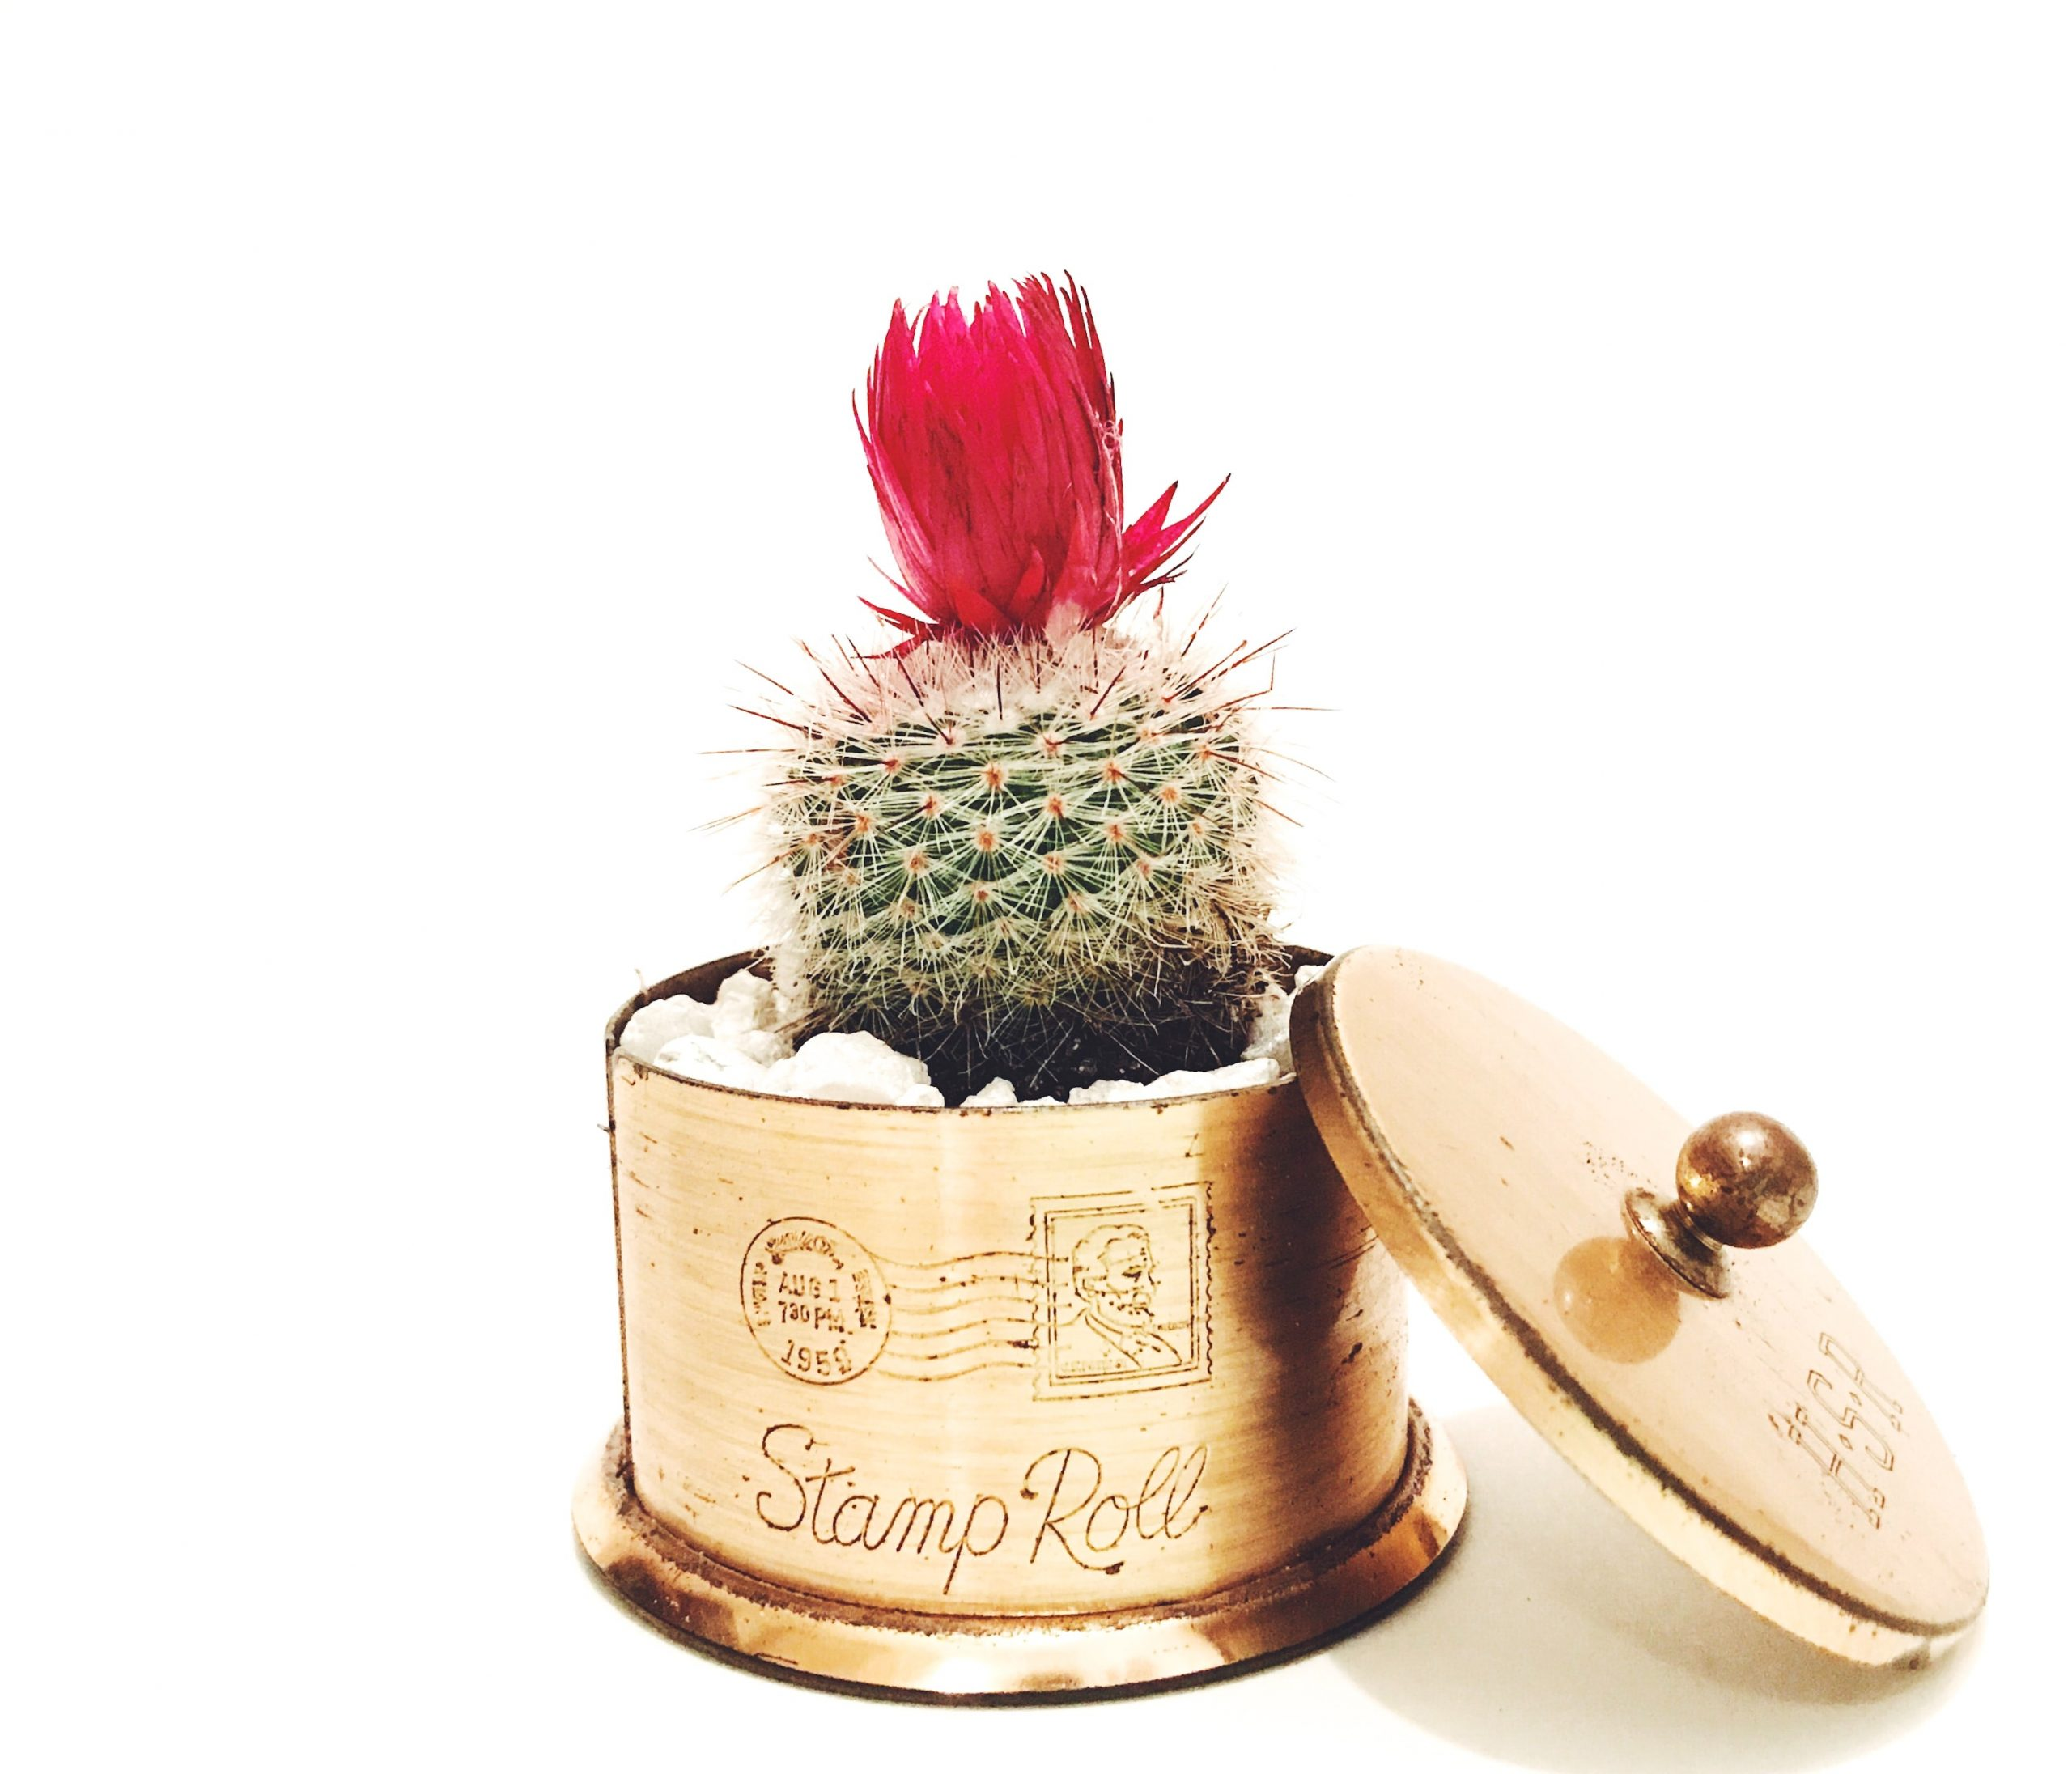 A cactus plant placed inside a golden metallic box